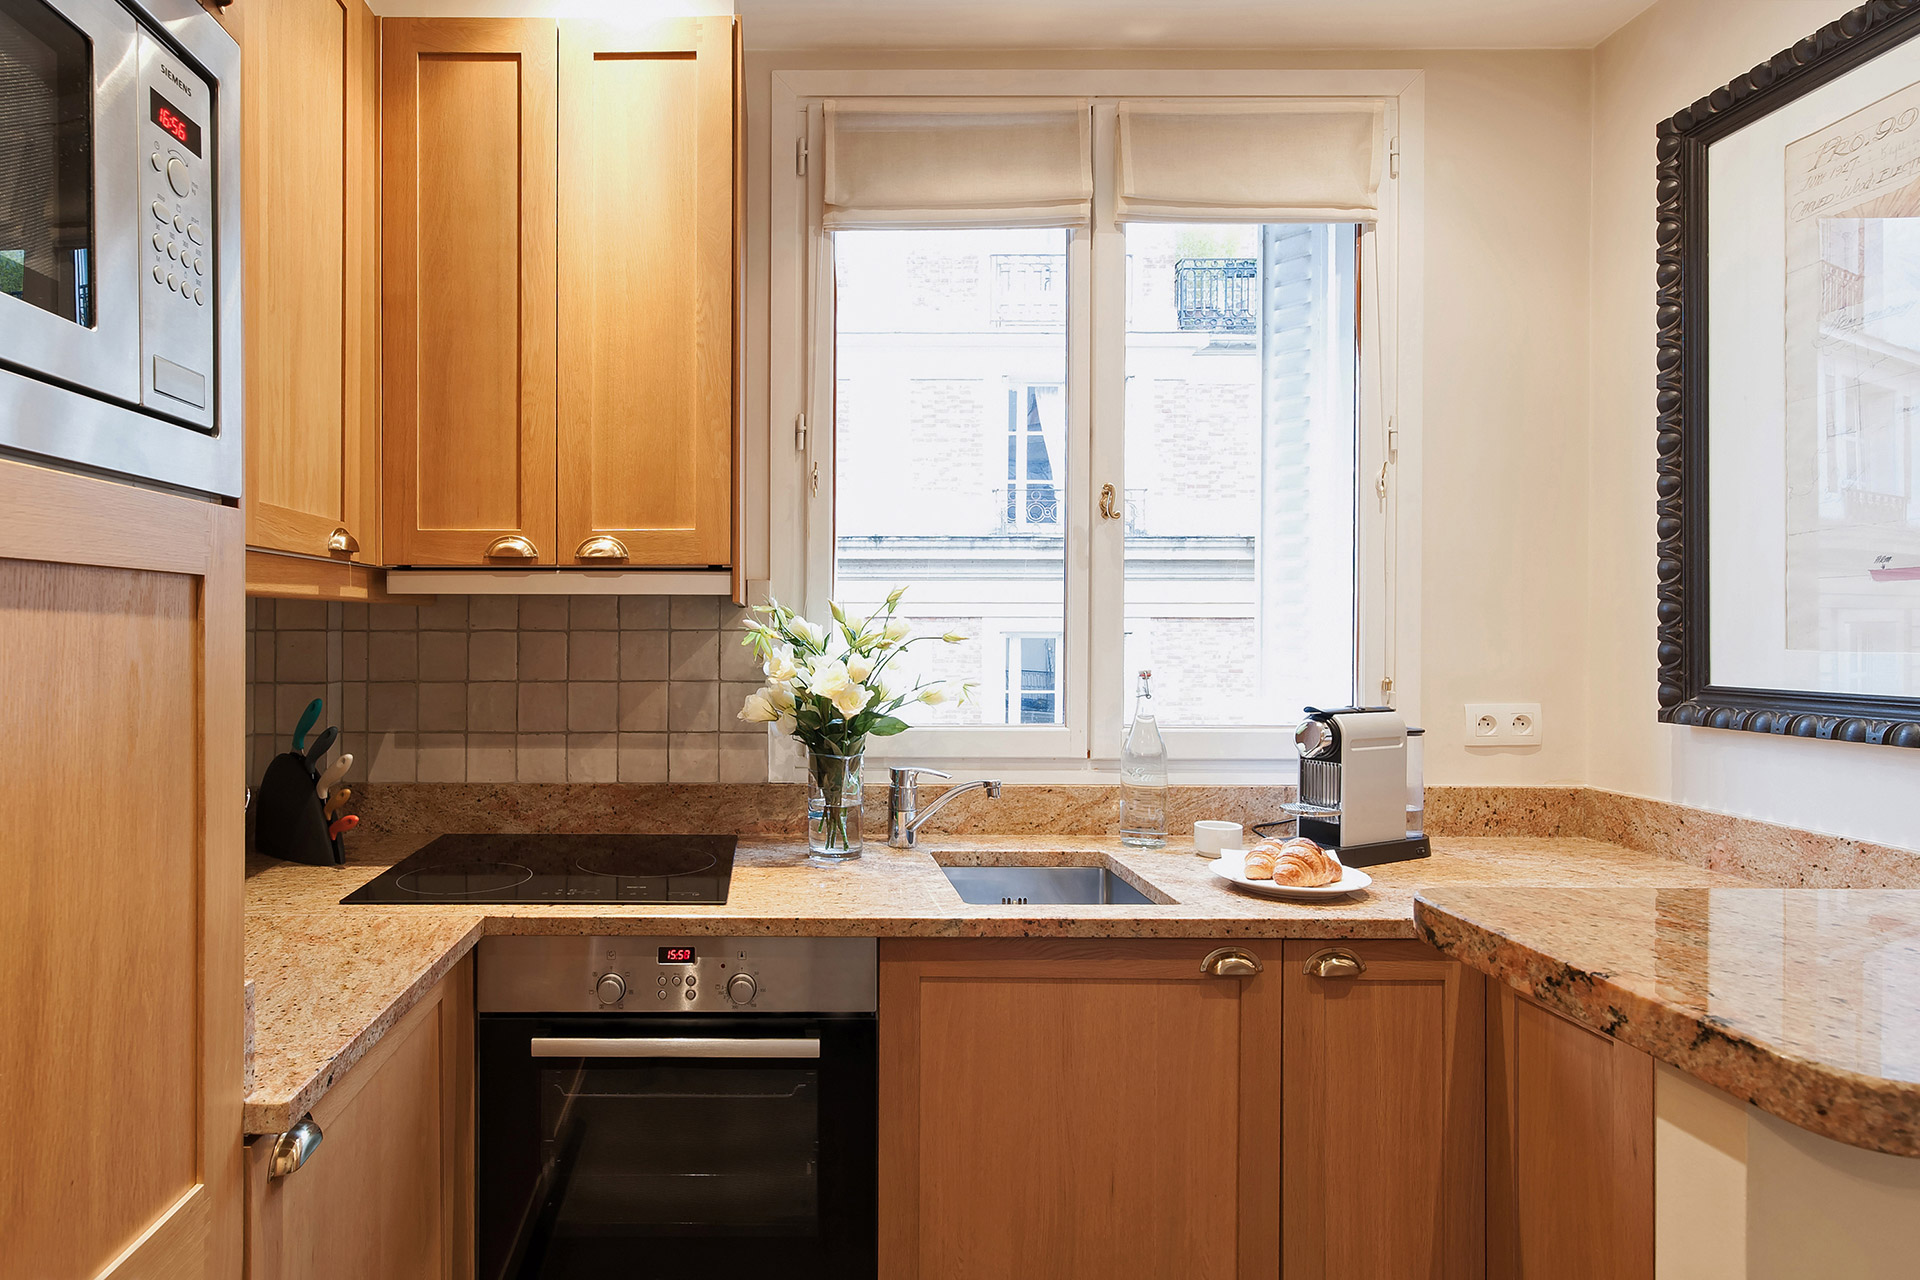 Kitchen in our Lalande Vacation Rental in Paris